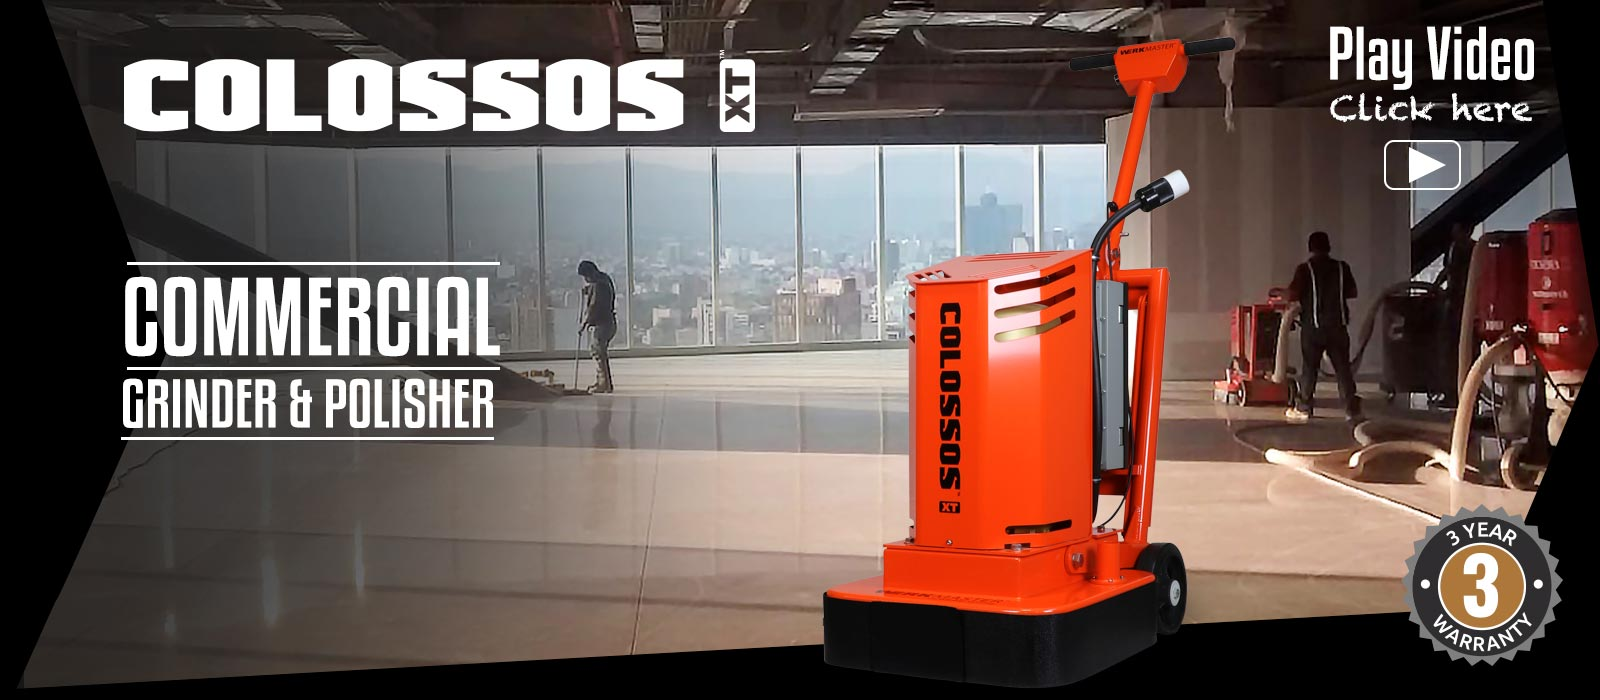 WerkMaster Colossos XT Commercial Grinder & Polisher